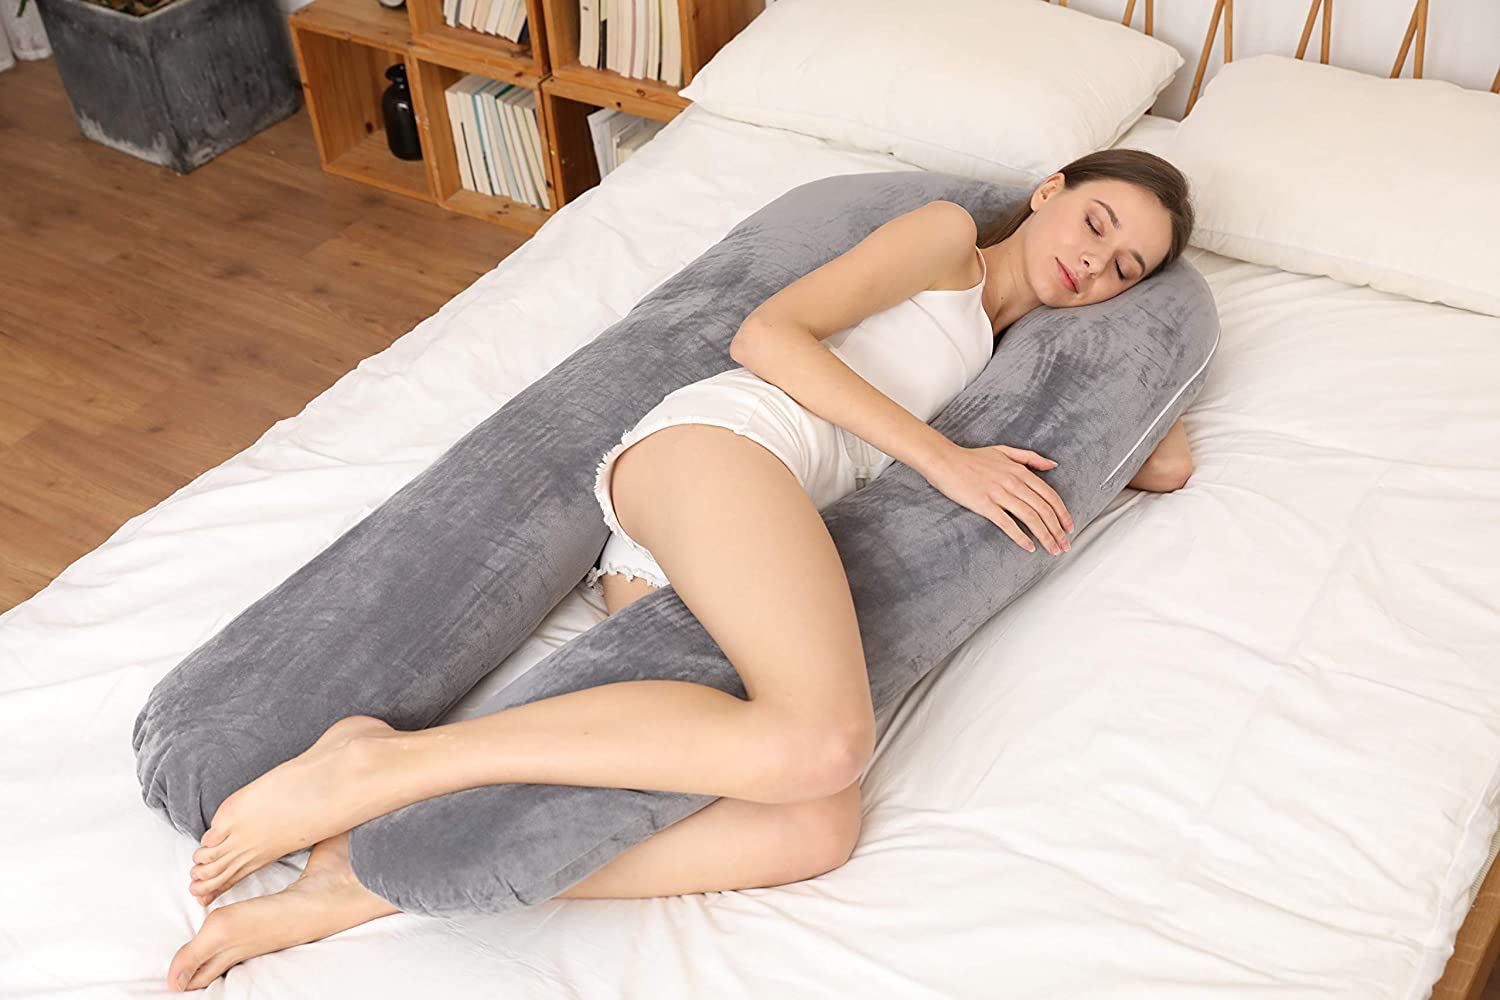 EVOLIVE Shaped Body Pillows Pregnancy Pillow with Removable Micrormink Cover (U-Shaped)